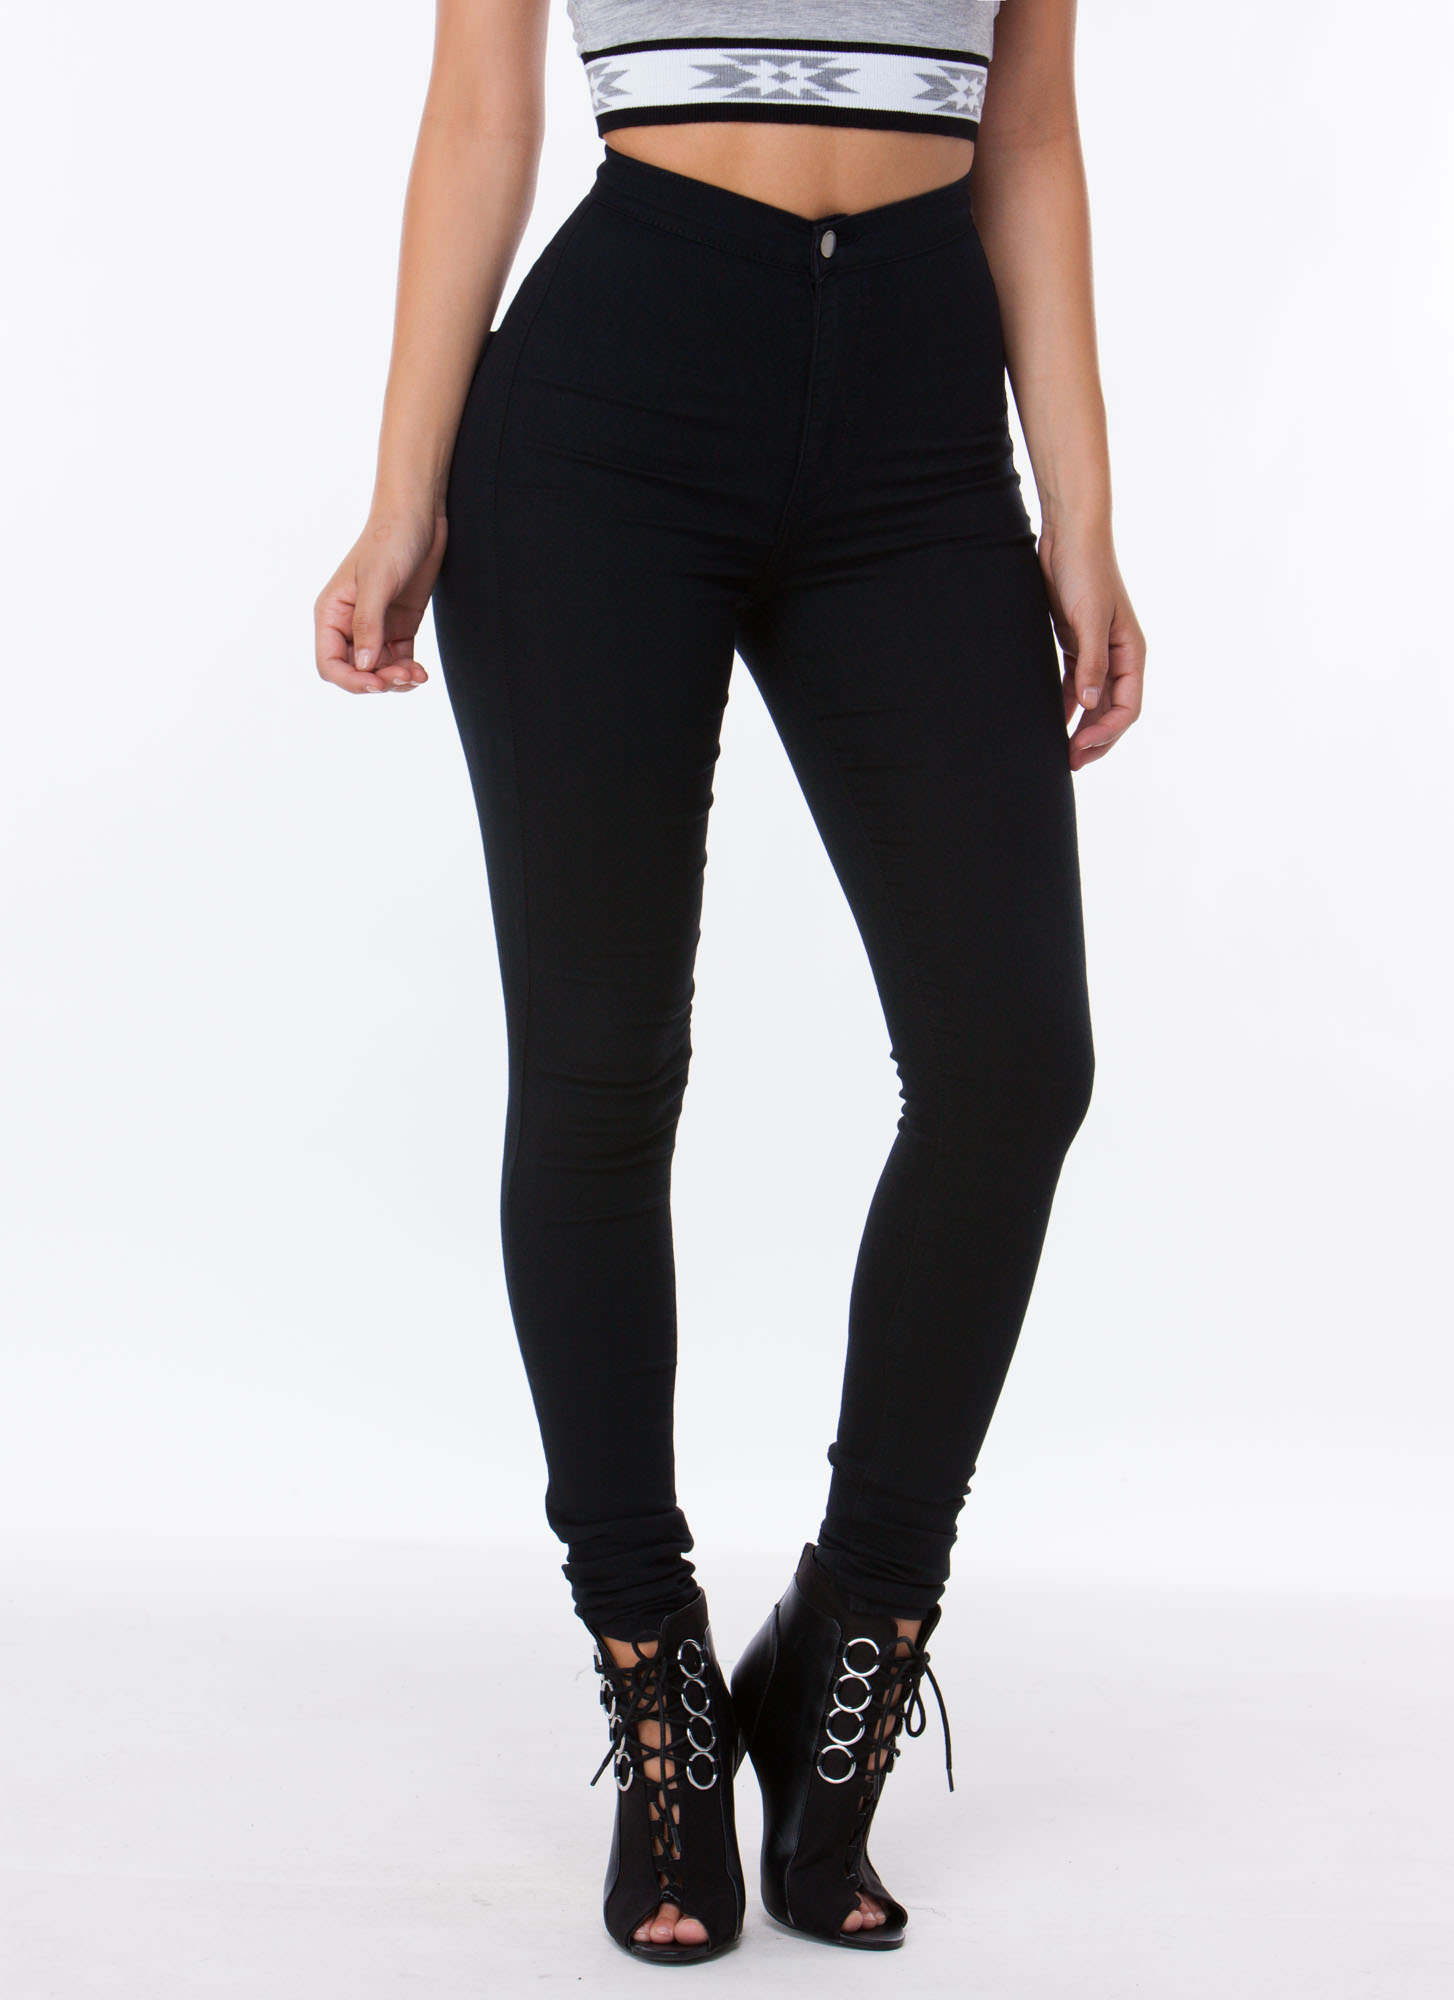 Jeggings Super tight from the waist to the leg, jeggings are bound to be your go-to. Their superbly soft, dreamy fabric and wide range of colors create the most comfortable and versatile design.